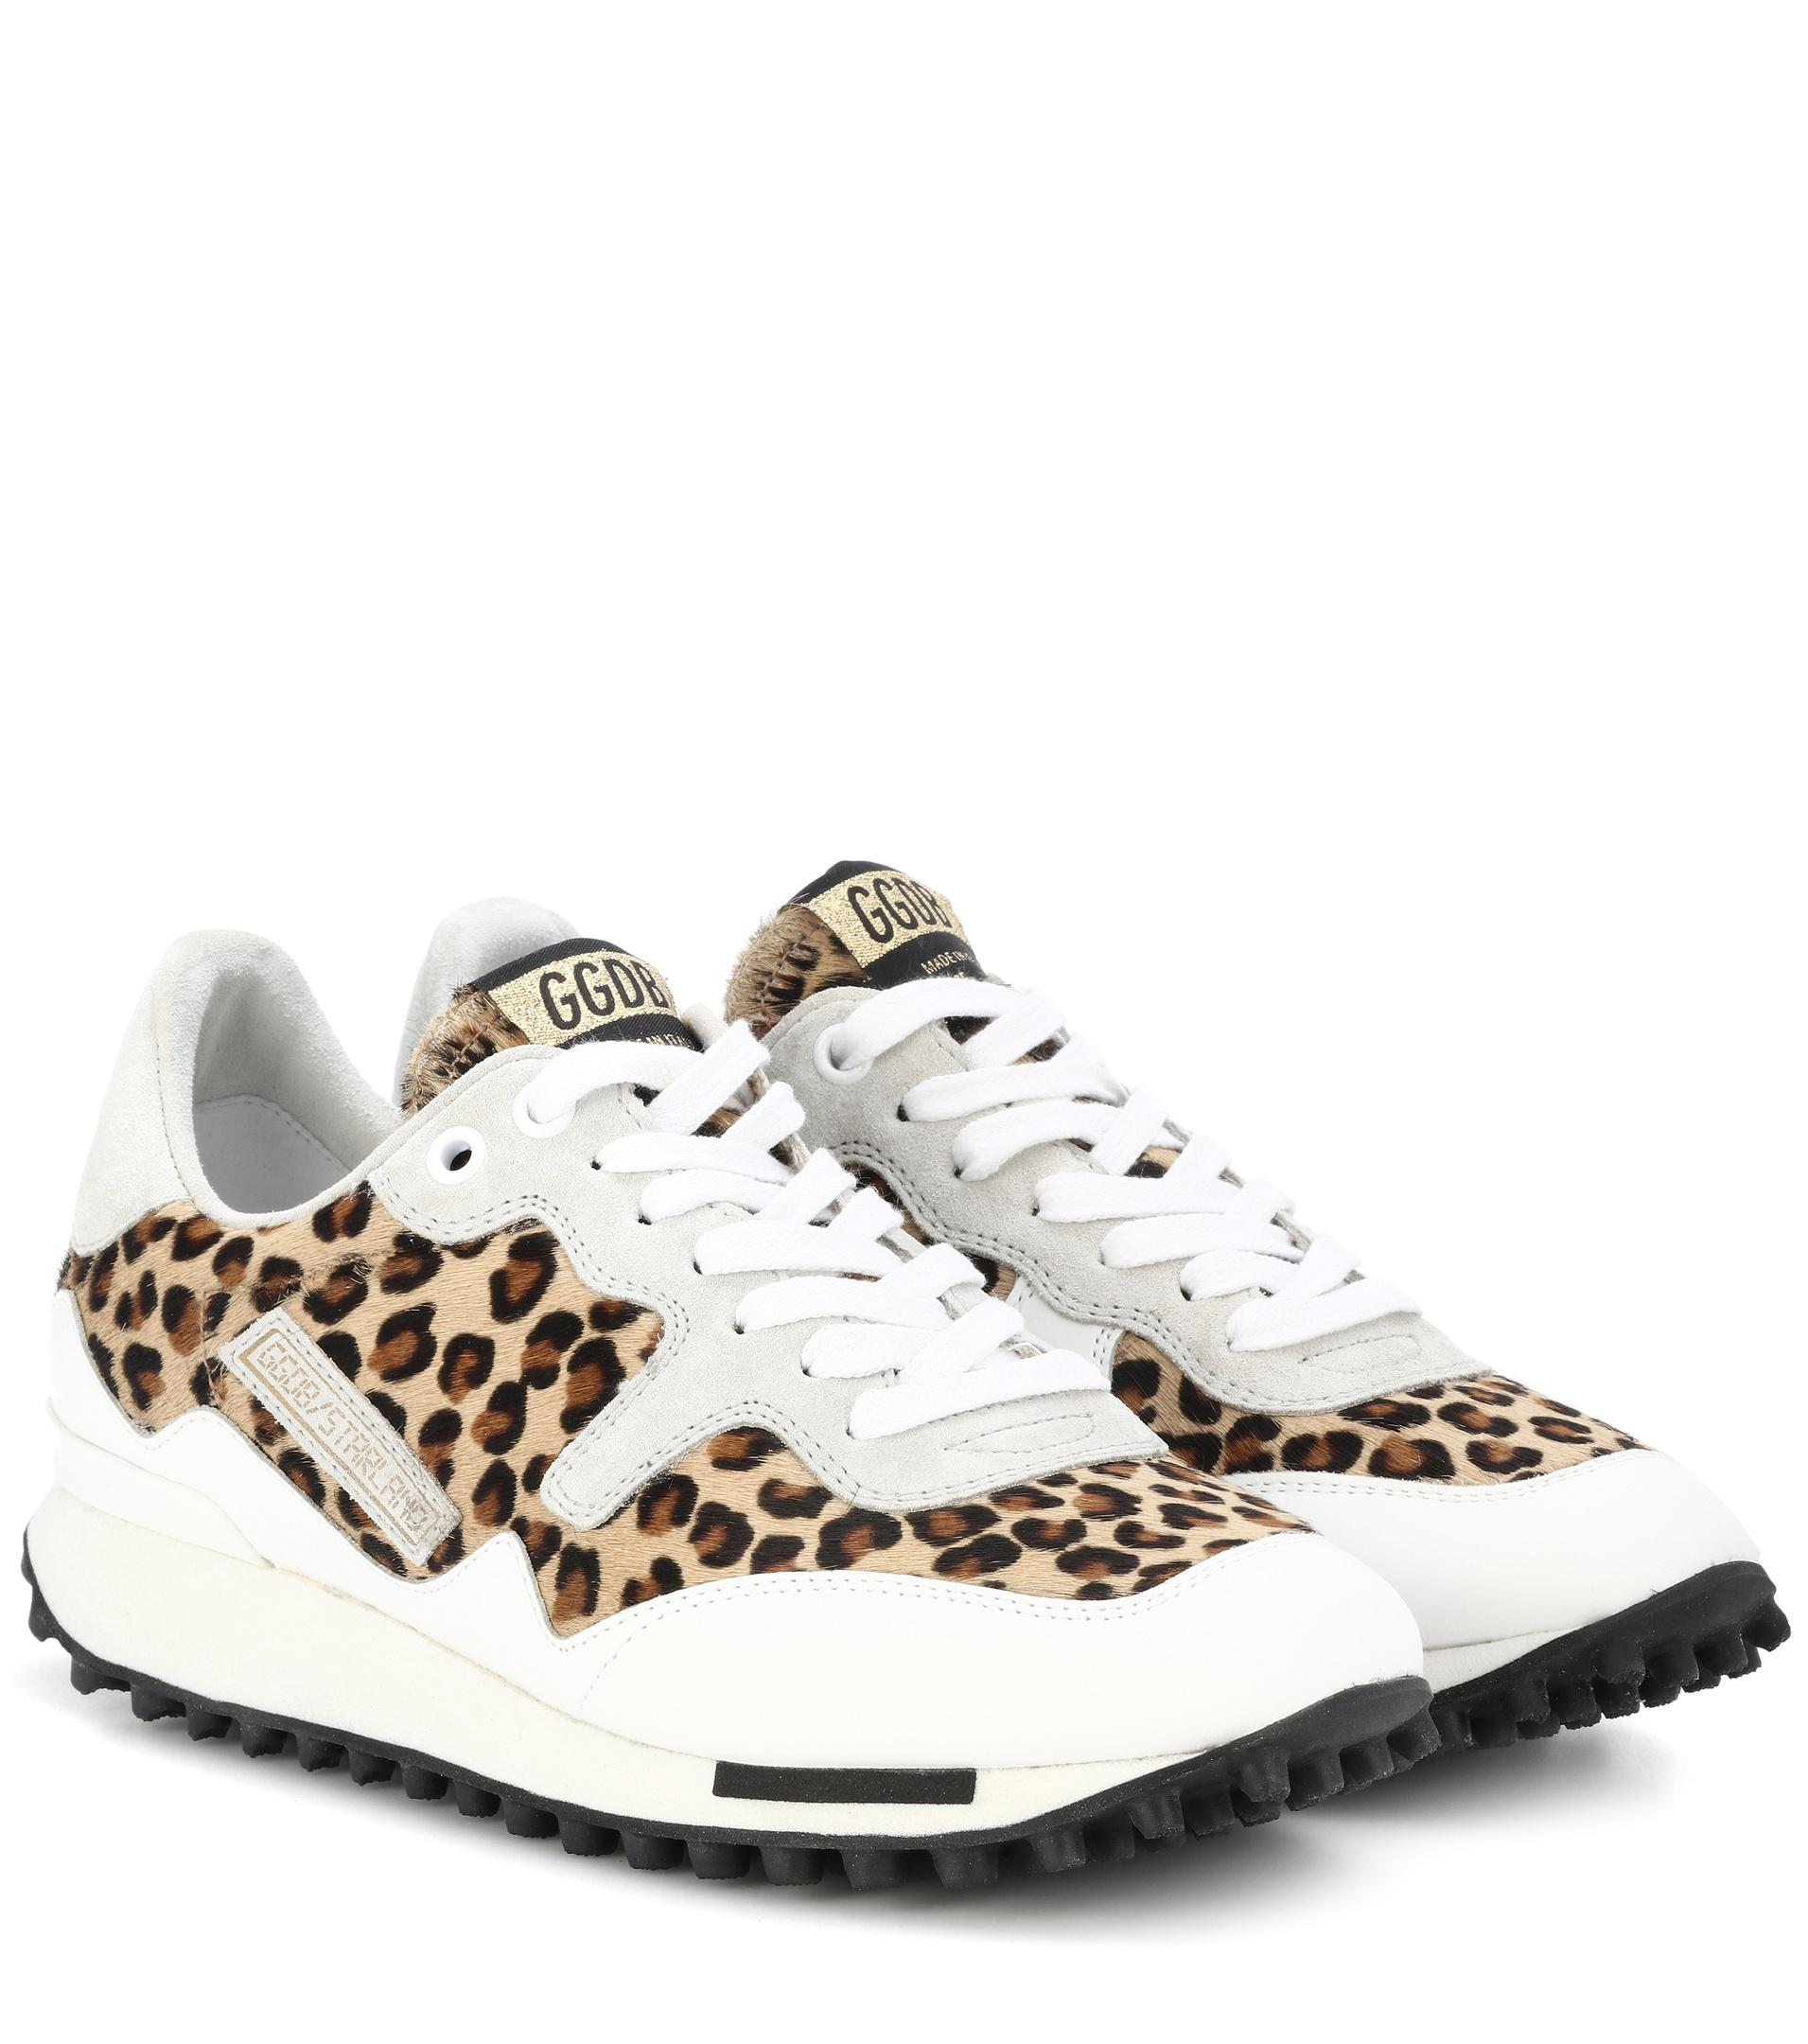 Starland Leopard-print Calf Hair, Suede And Leather Sneakers - Leopard print Golden Goose